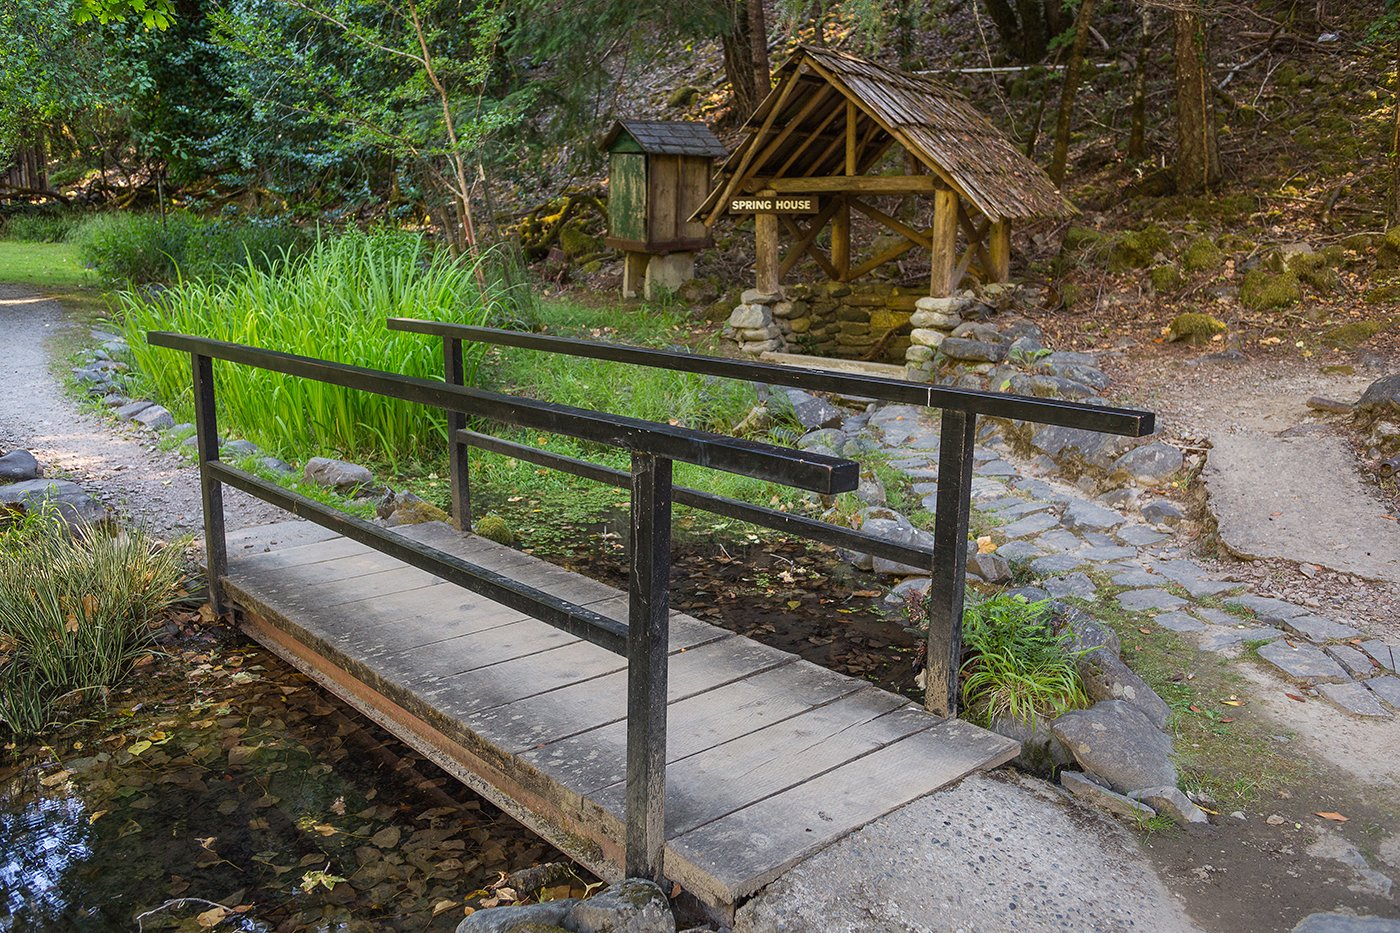 Bridge next to the Spring House at Black Bar Lodge on the Wild & Scenic Rogue River